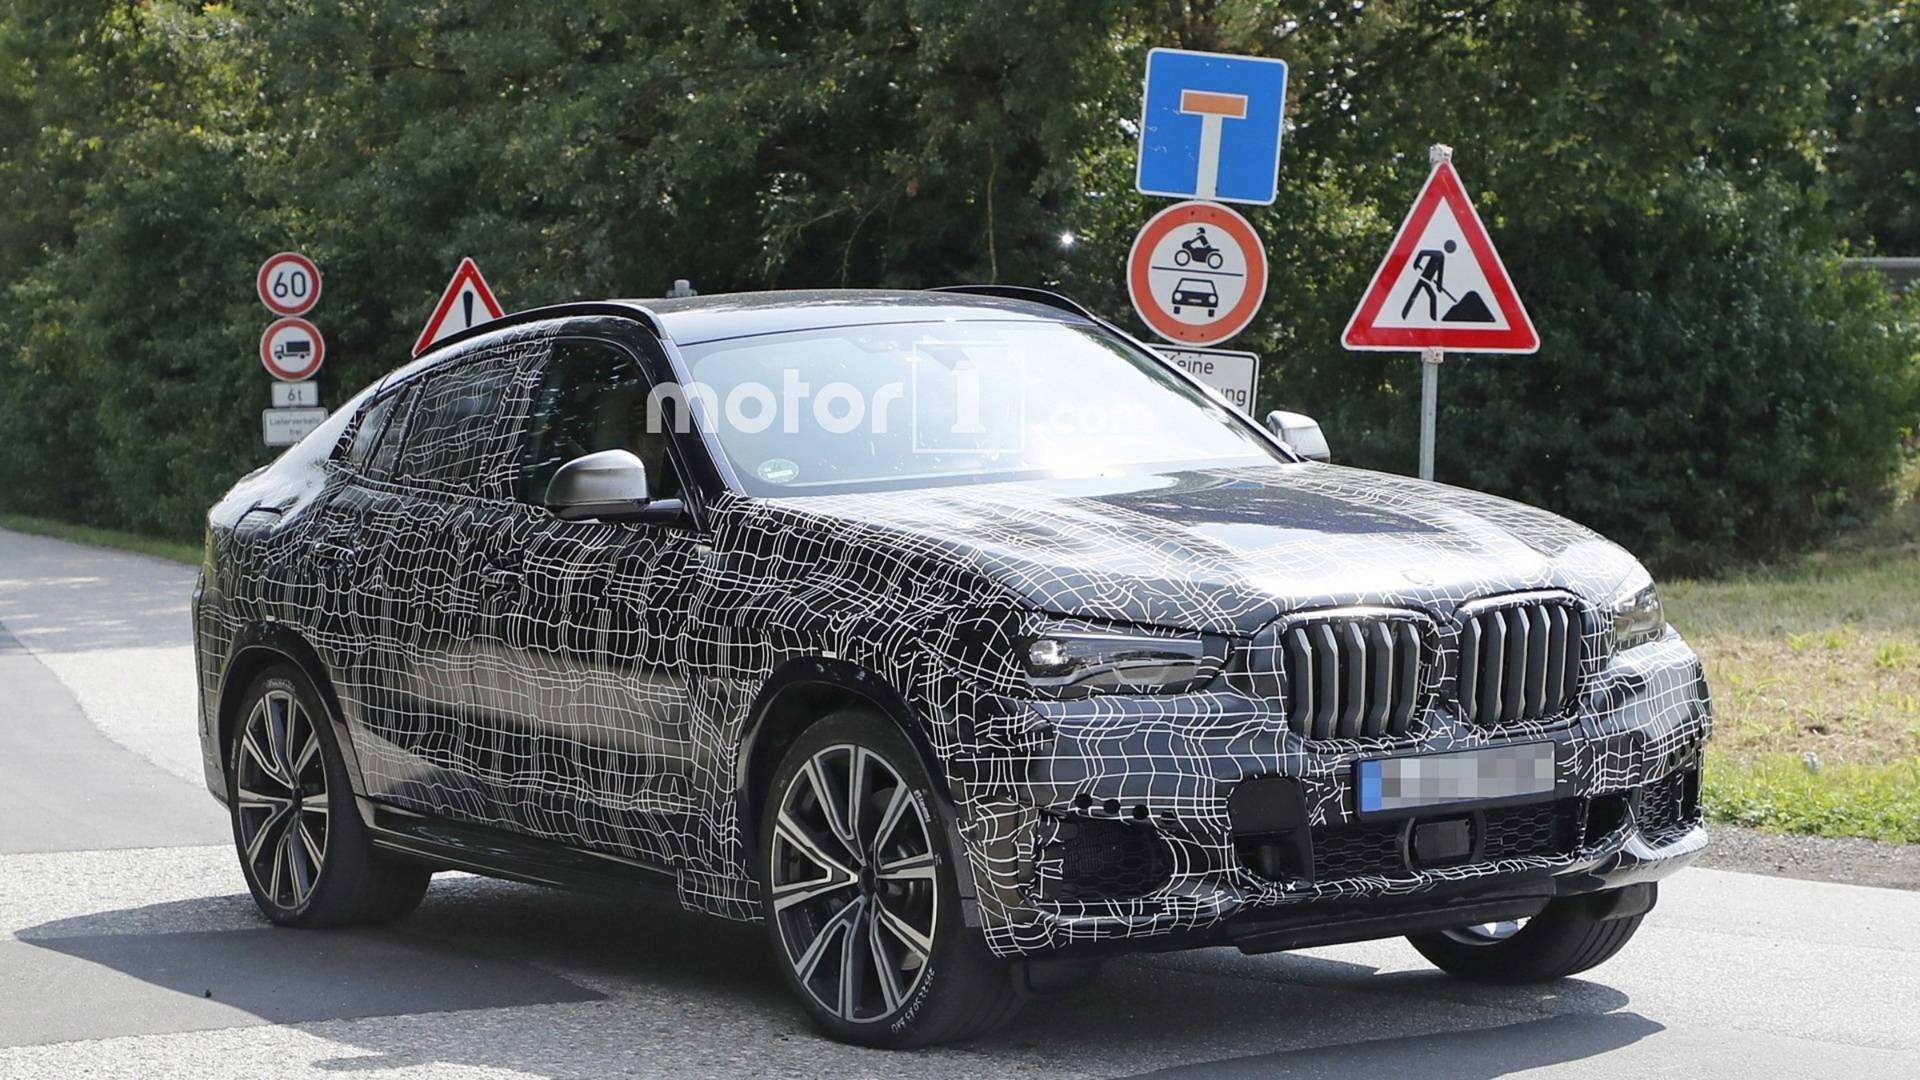 42 All New When Will 2020 BMW X6 Be Available Review And Release Date